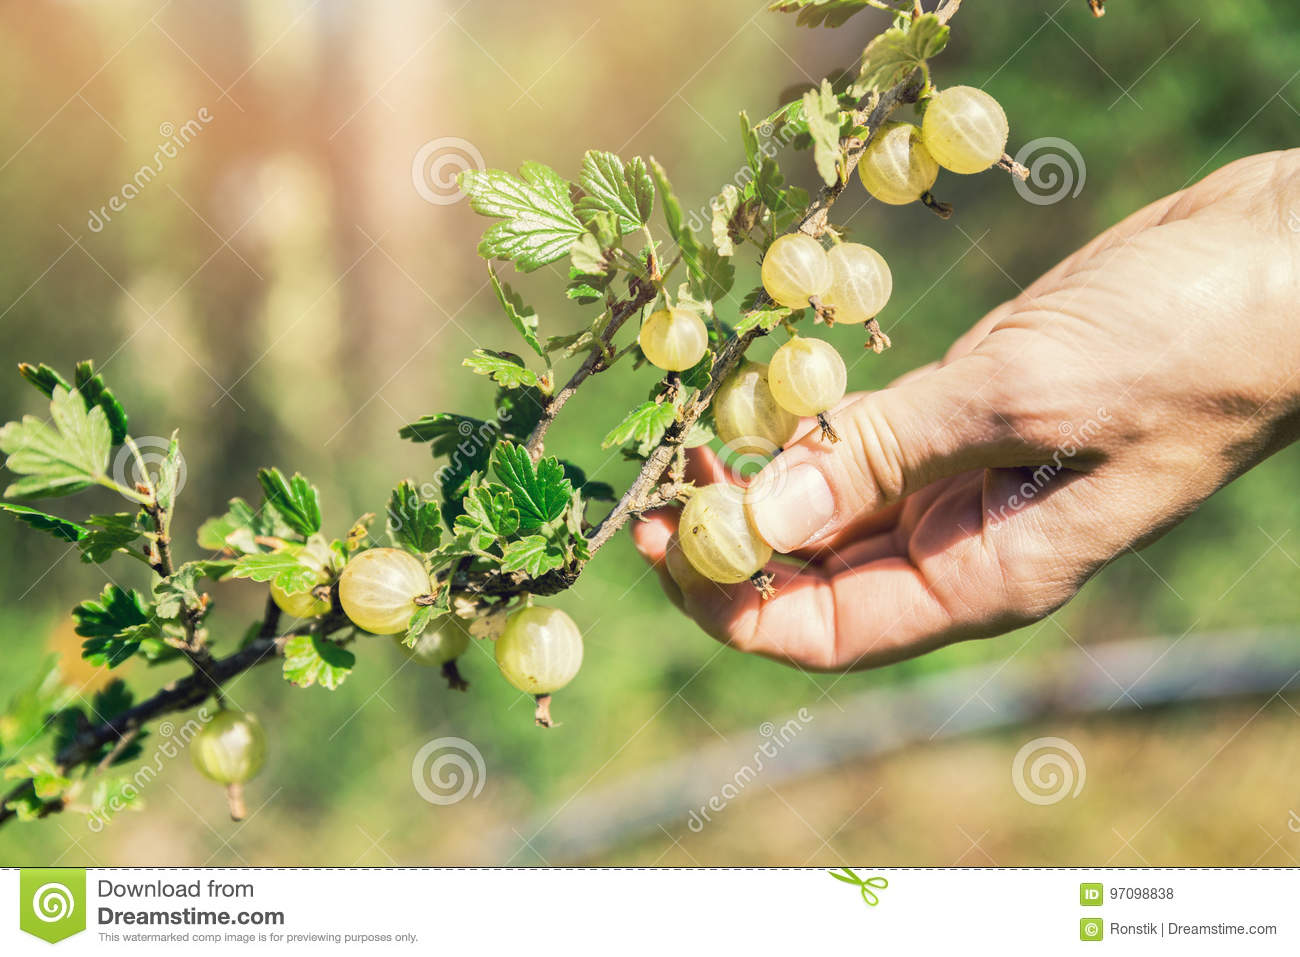 Hand picking ripe berries of gooseberry bush